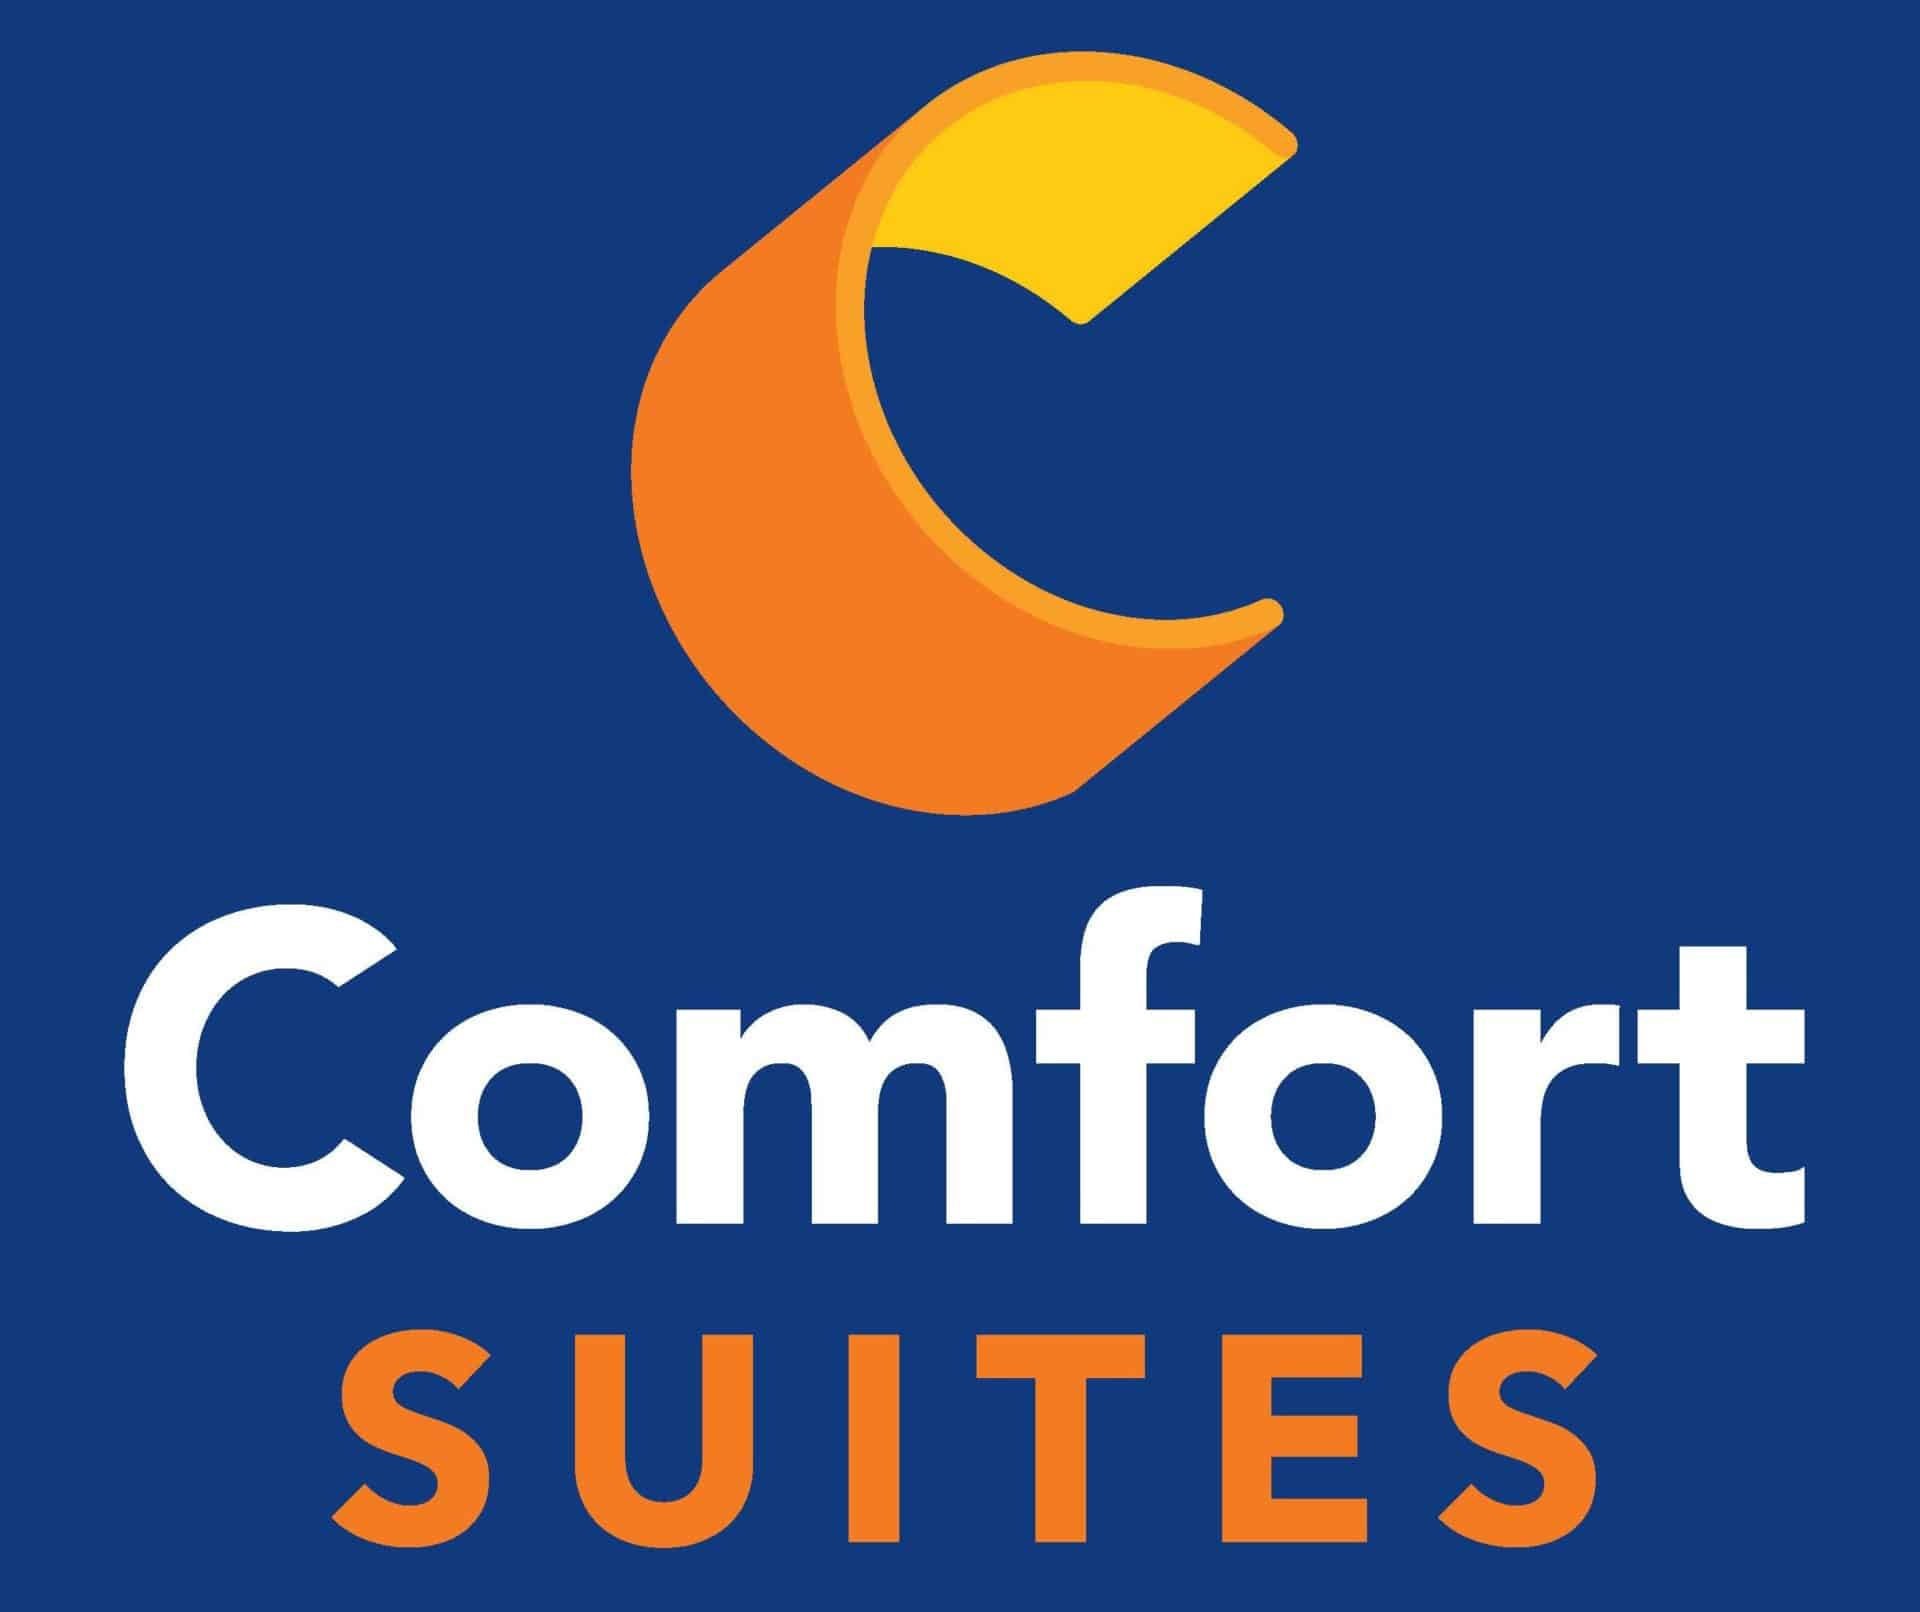 Comfort Suites new logo